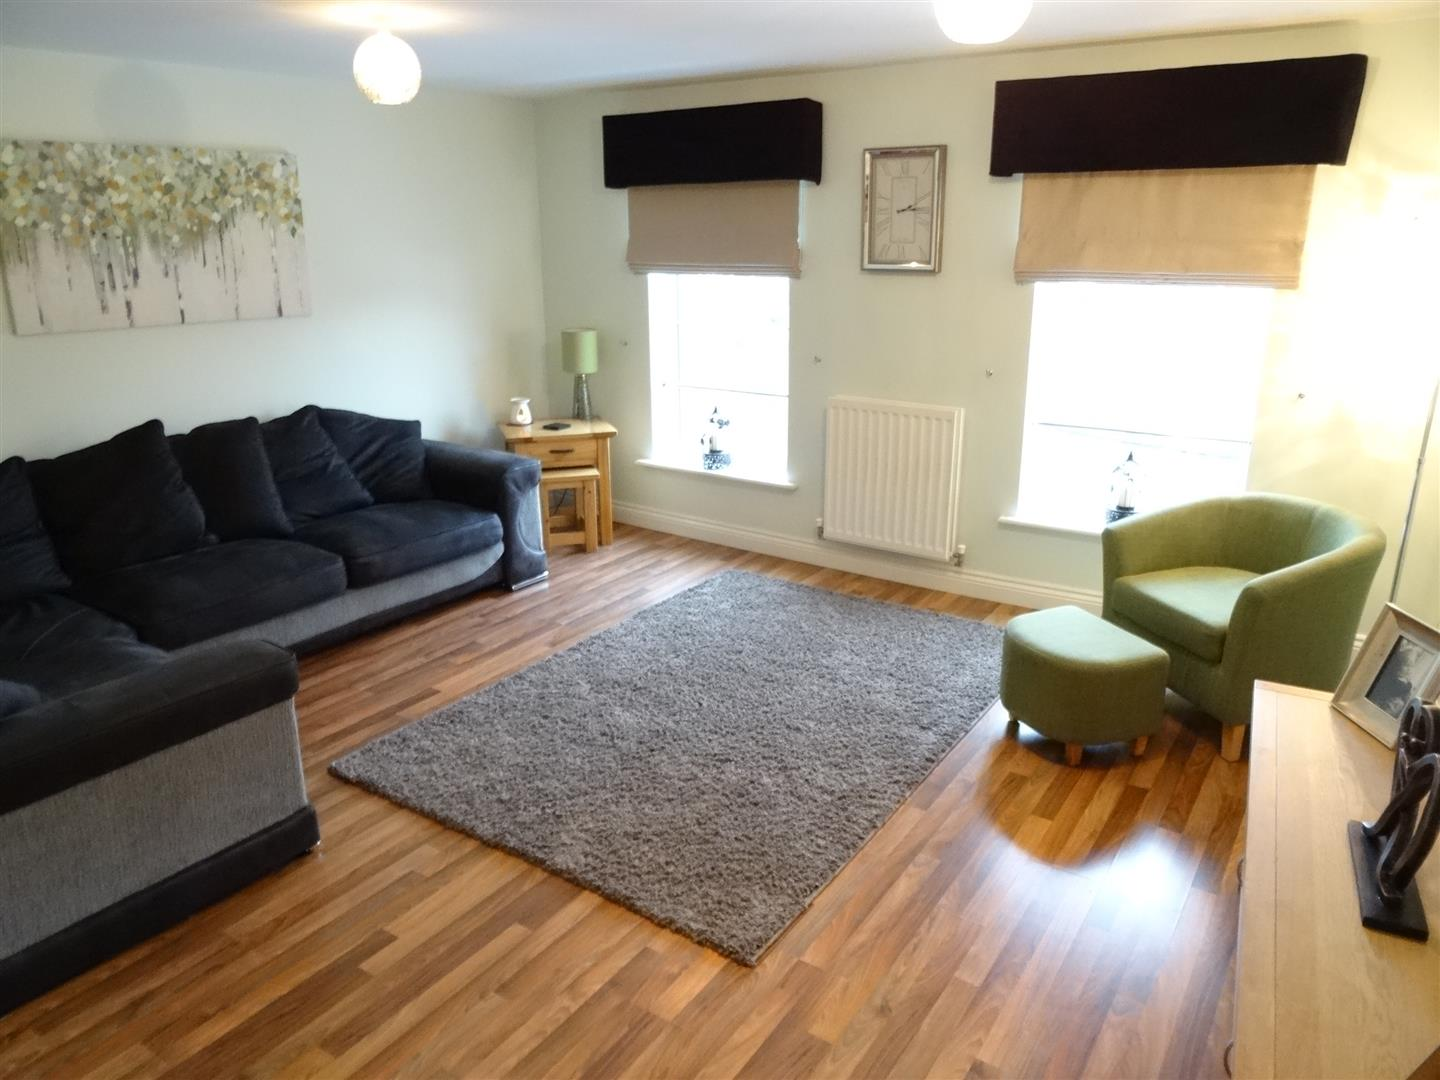 4 Bedrooms House - Townhouse For Sale 55 Lowry Gardens Carlisle